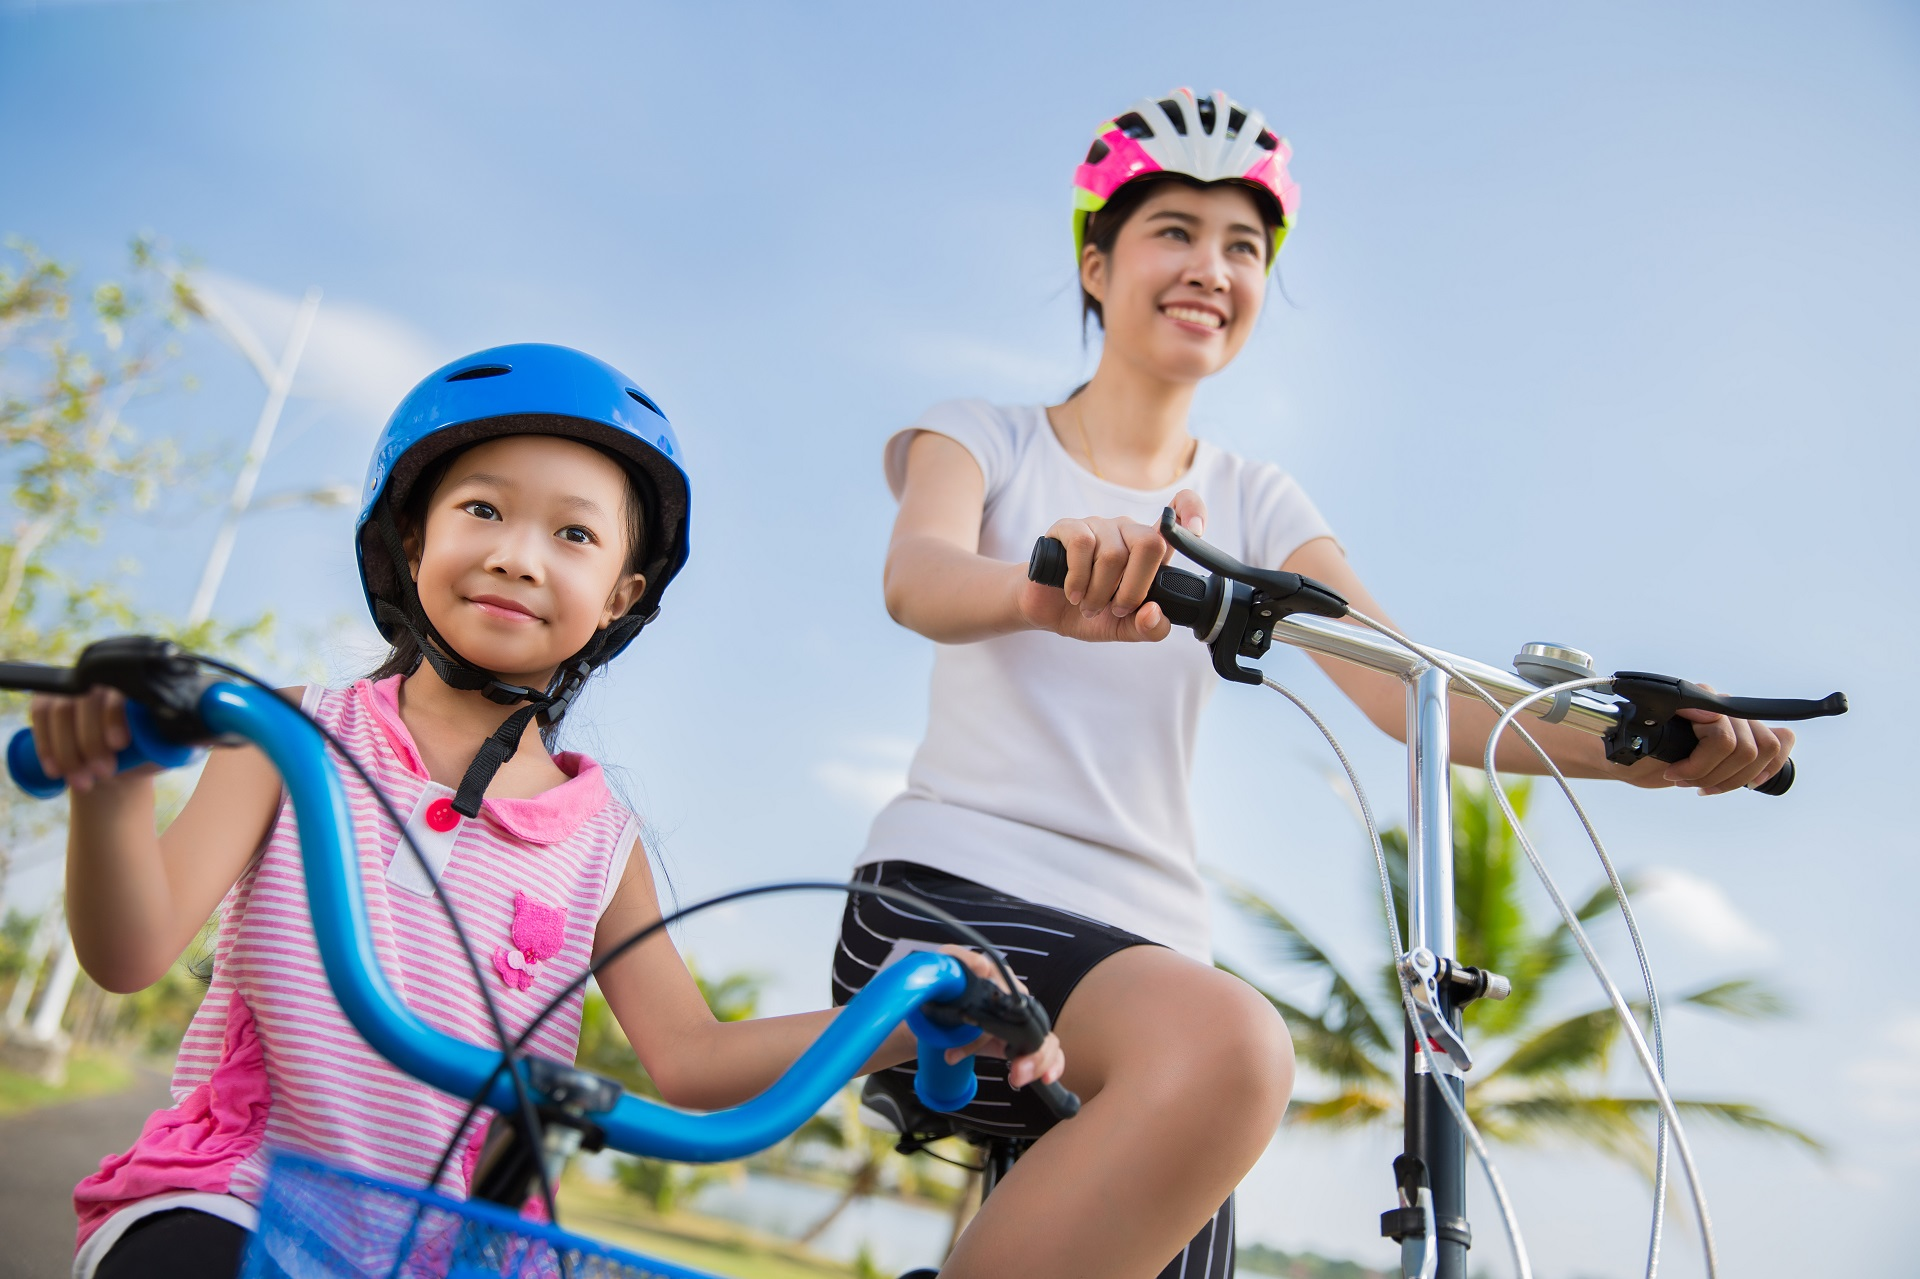 Partnerships to Drive Healthy Eating and Active Lifestyles in Malaysia